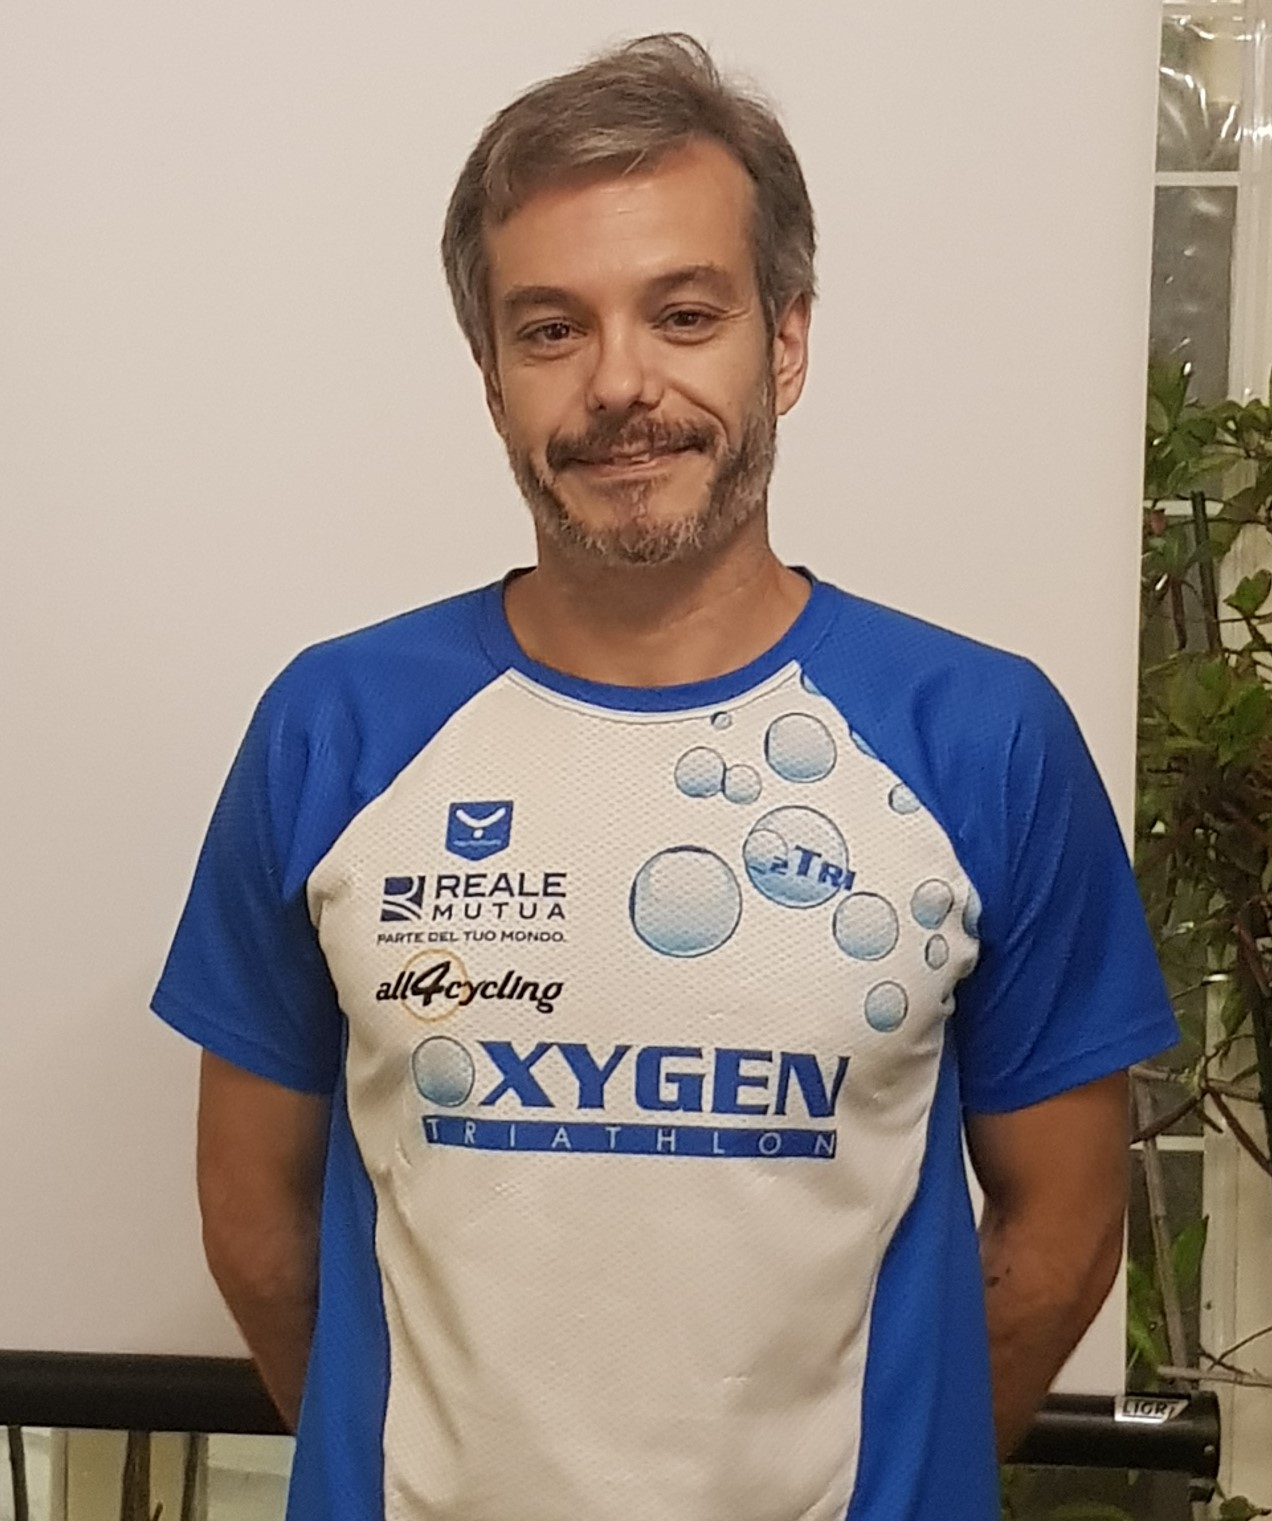 https://www.oxygentriathlon.it/wp-content/uploads/2019/10/consiglieri-diego.jpg